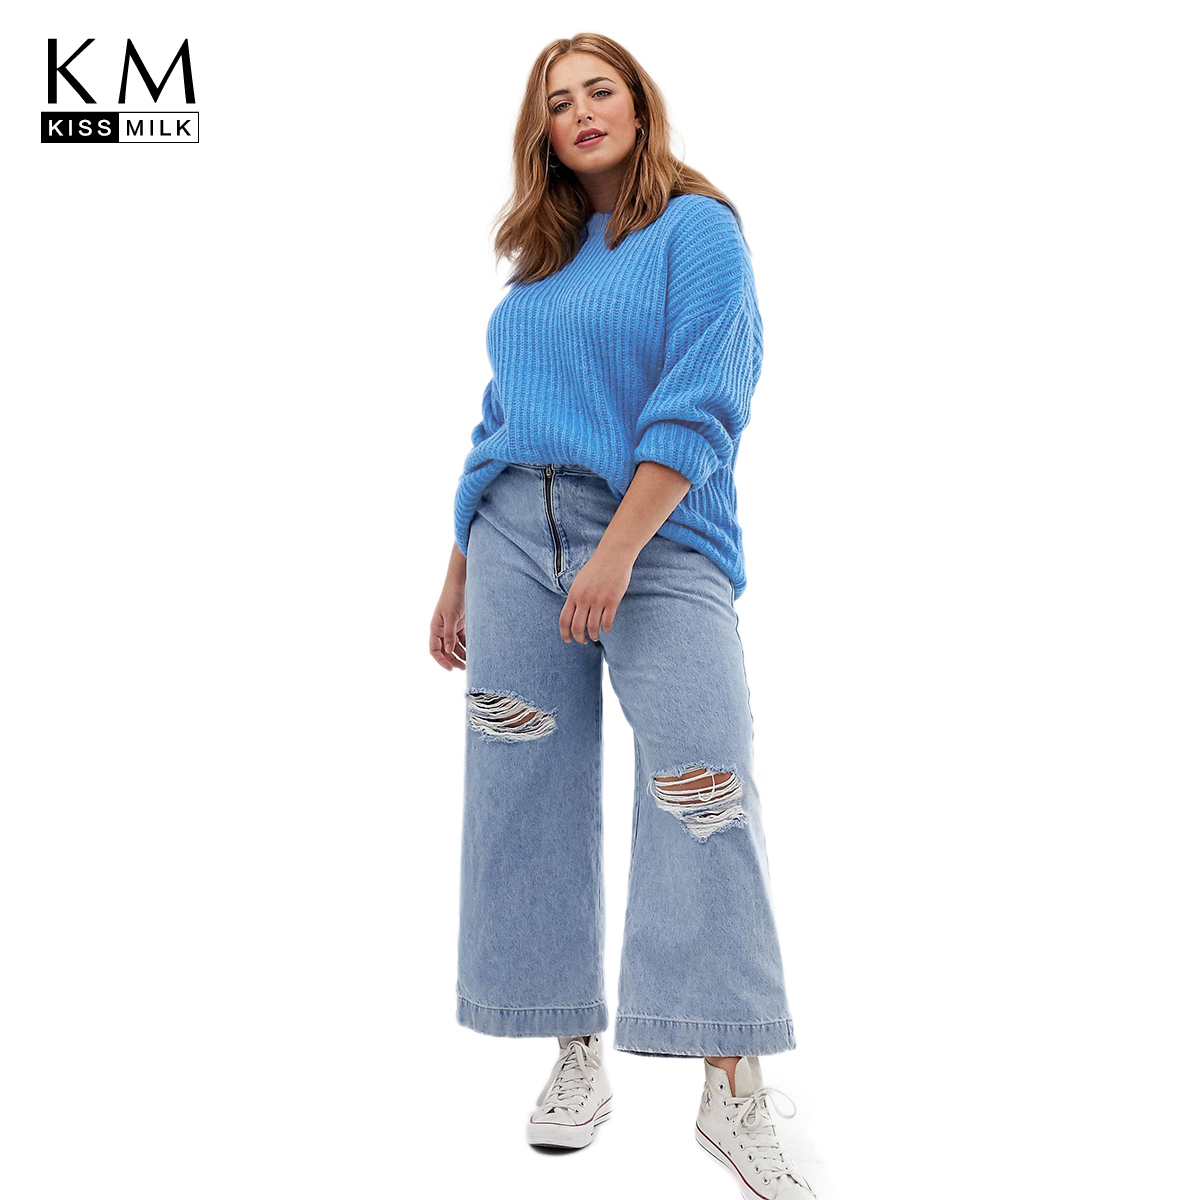 Kissmilk Plus Size Woman Clothes Simple Wind Down Shoulder Warm Long Sleeve Pullover Sweater